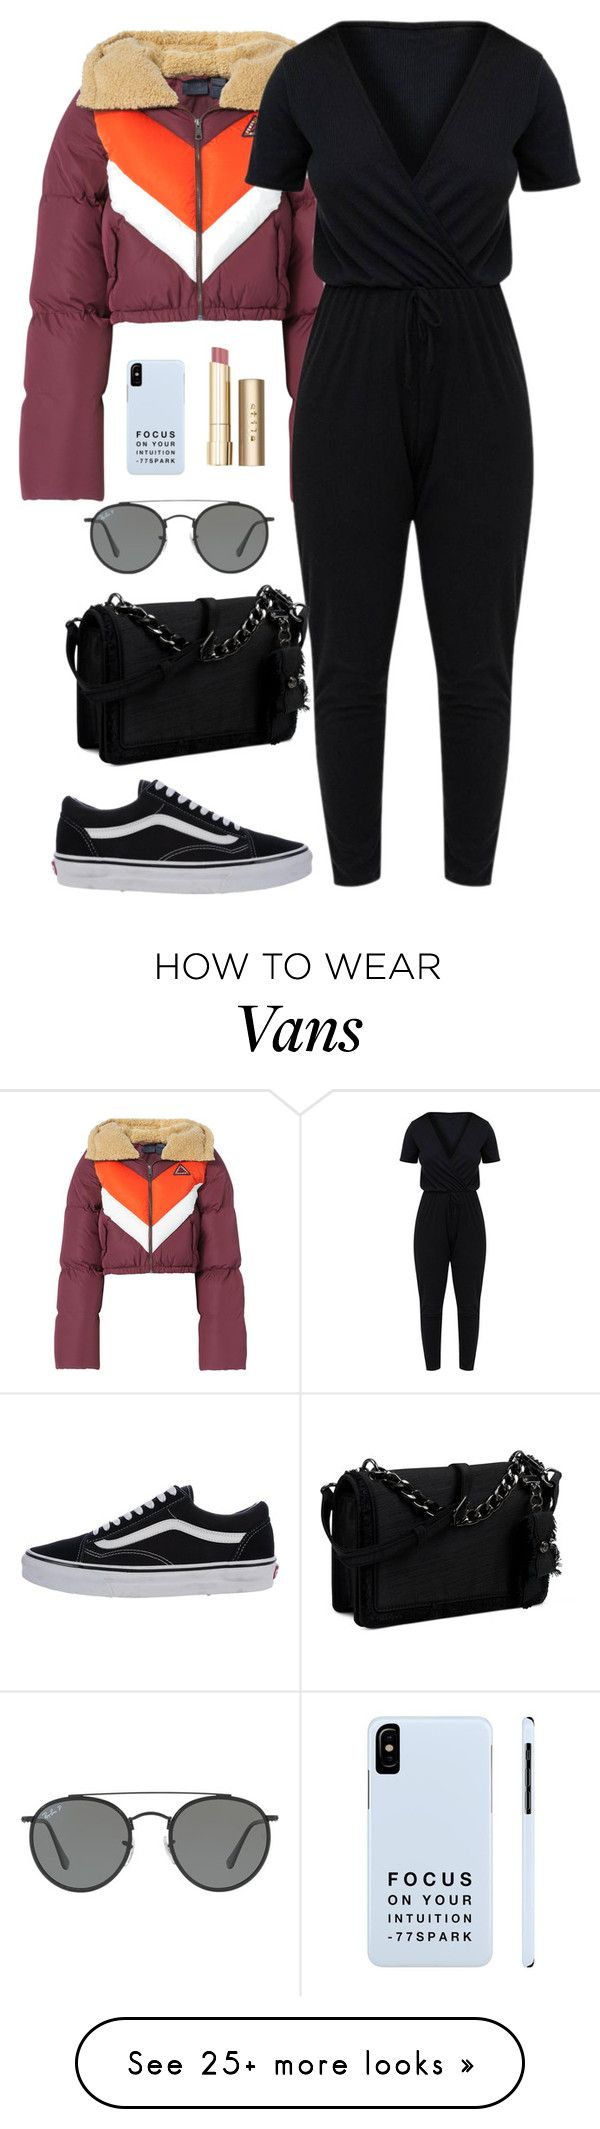 """""""You don't have to be perfect to be amazing"""" by chase-stars on Polyvore featuring Puma, Vans, Nine West, Ray-Ban and Stila"""